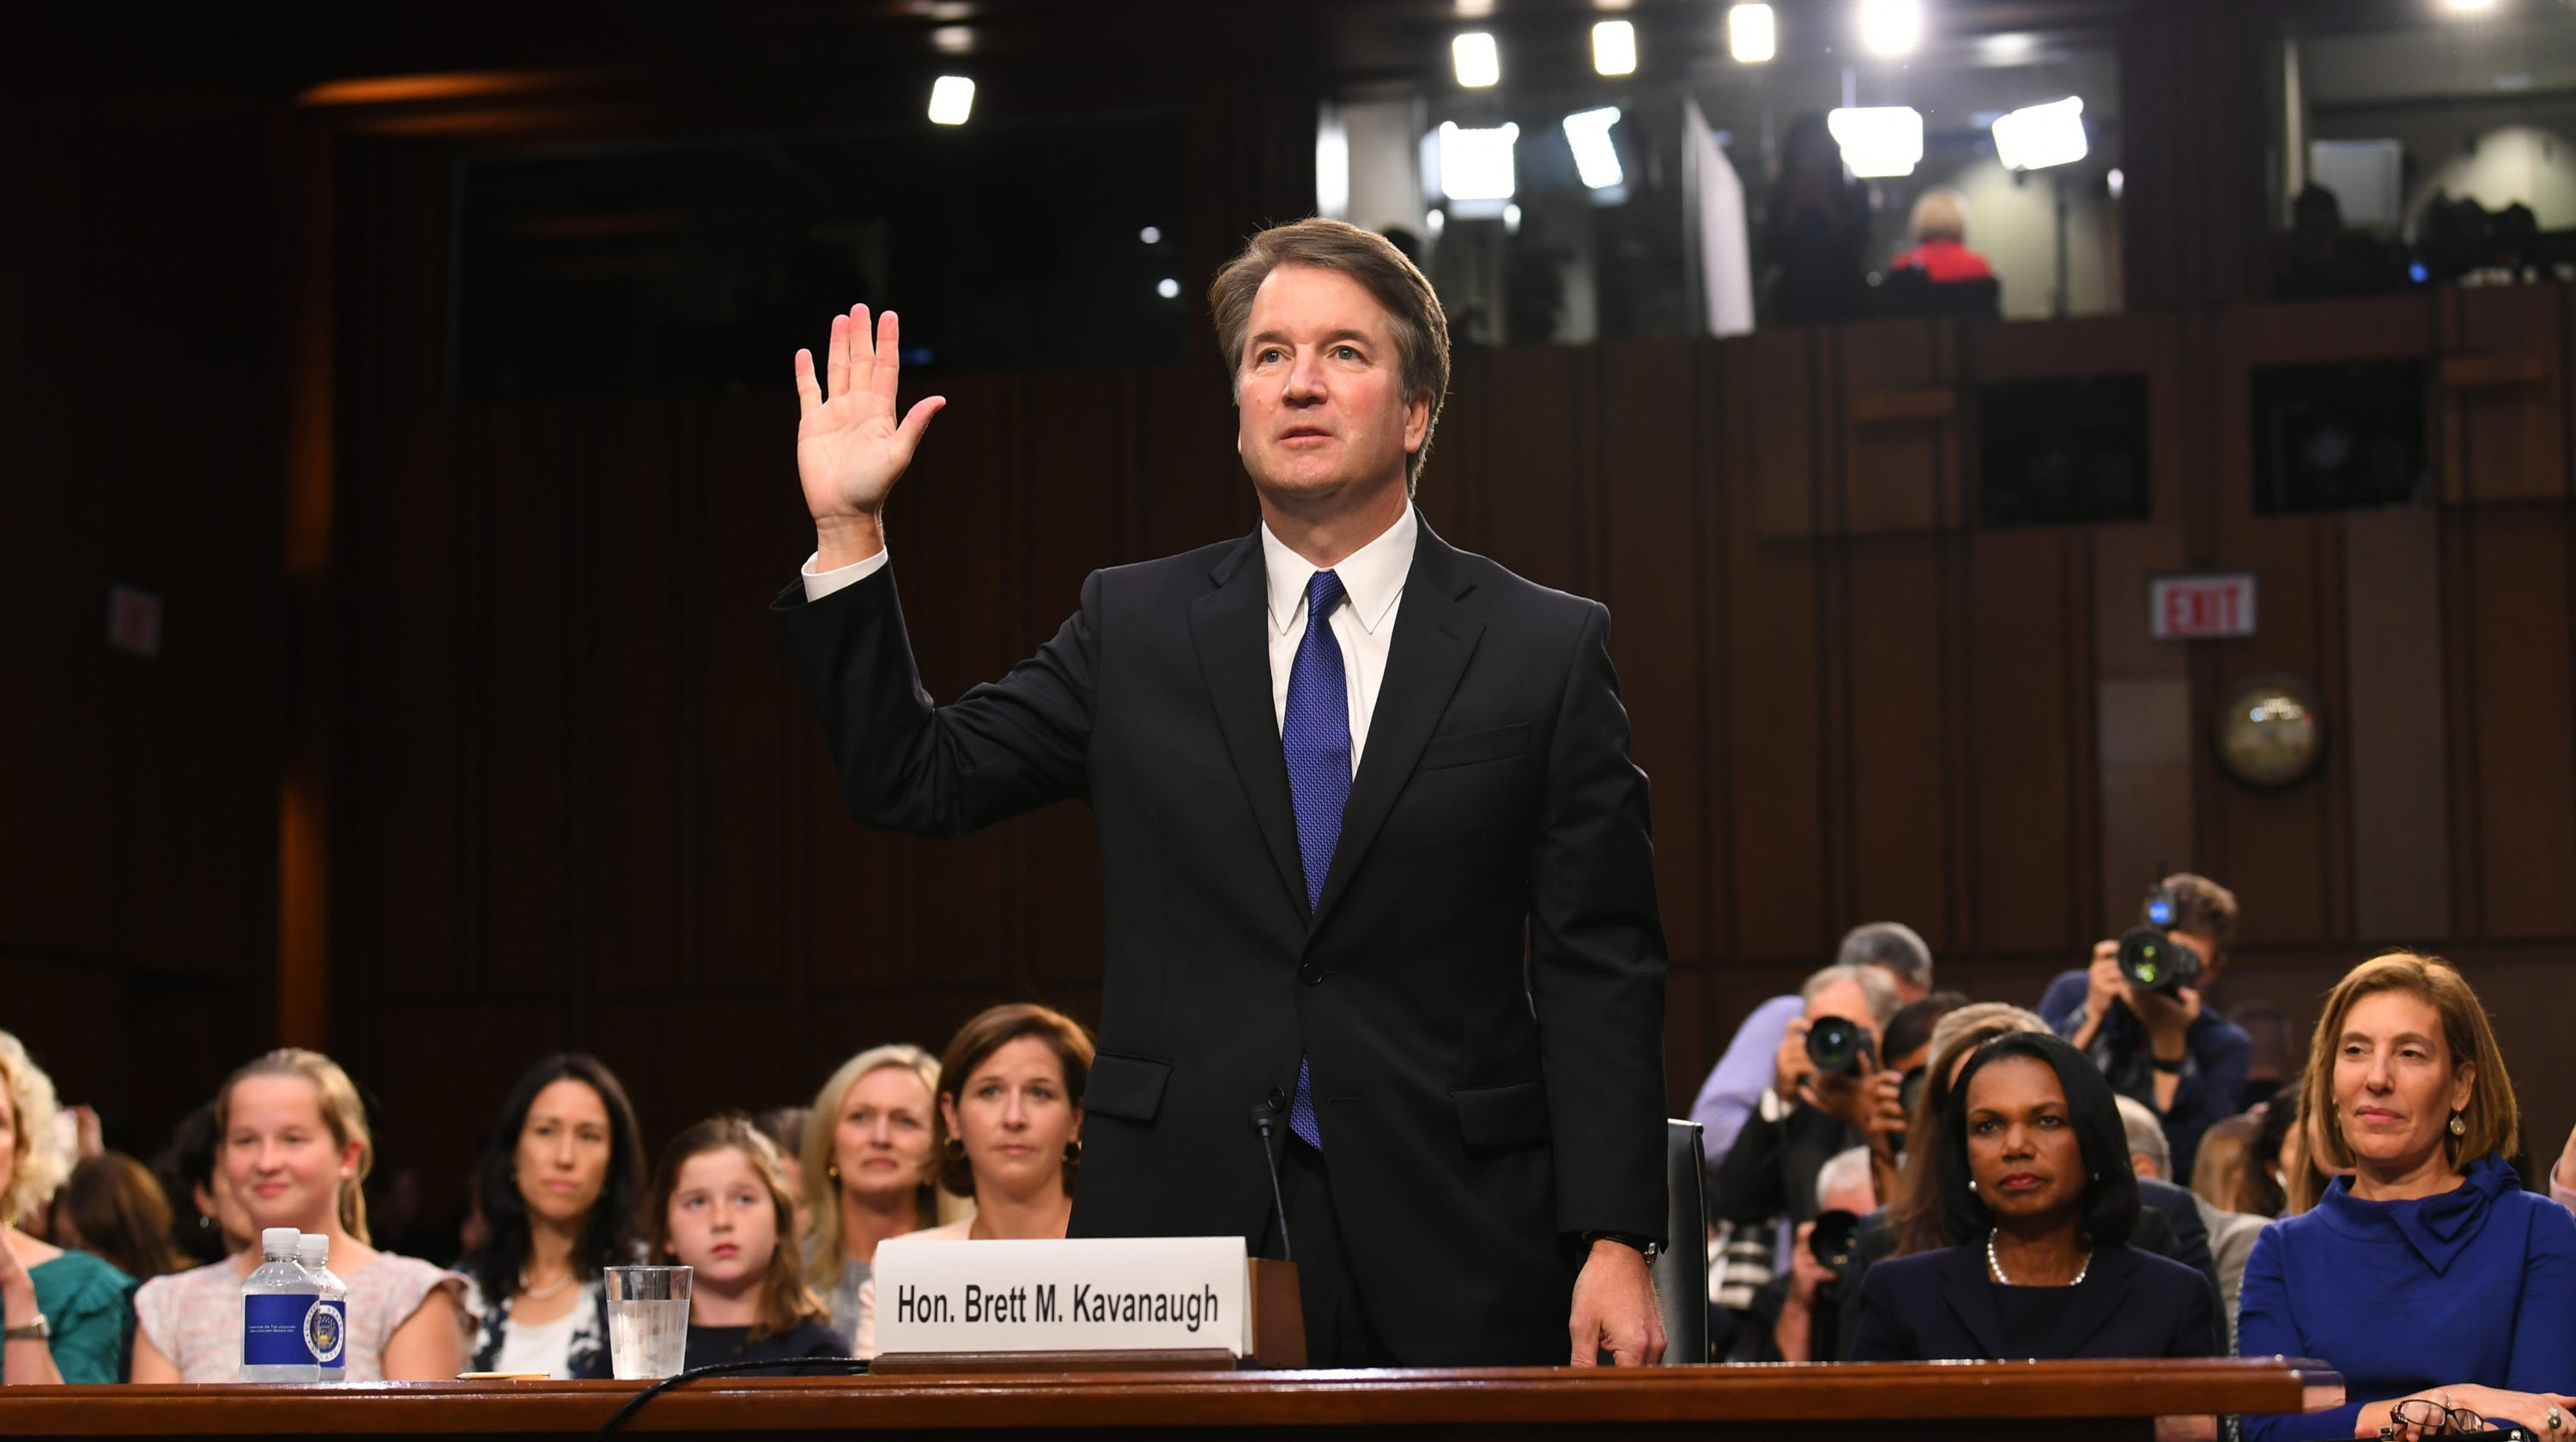 Brett Kavanaugh Hearing Dr Ford Speaks To Senate Watch Live Confirmation And Latest News In Judiciary Committee